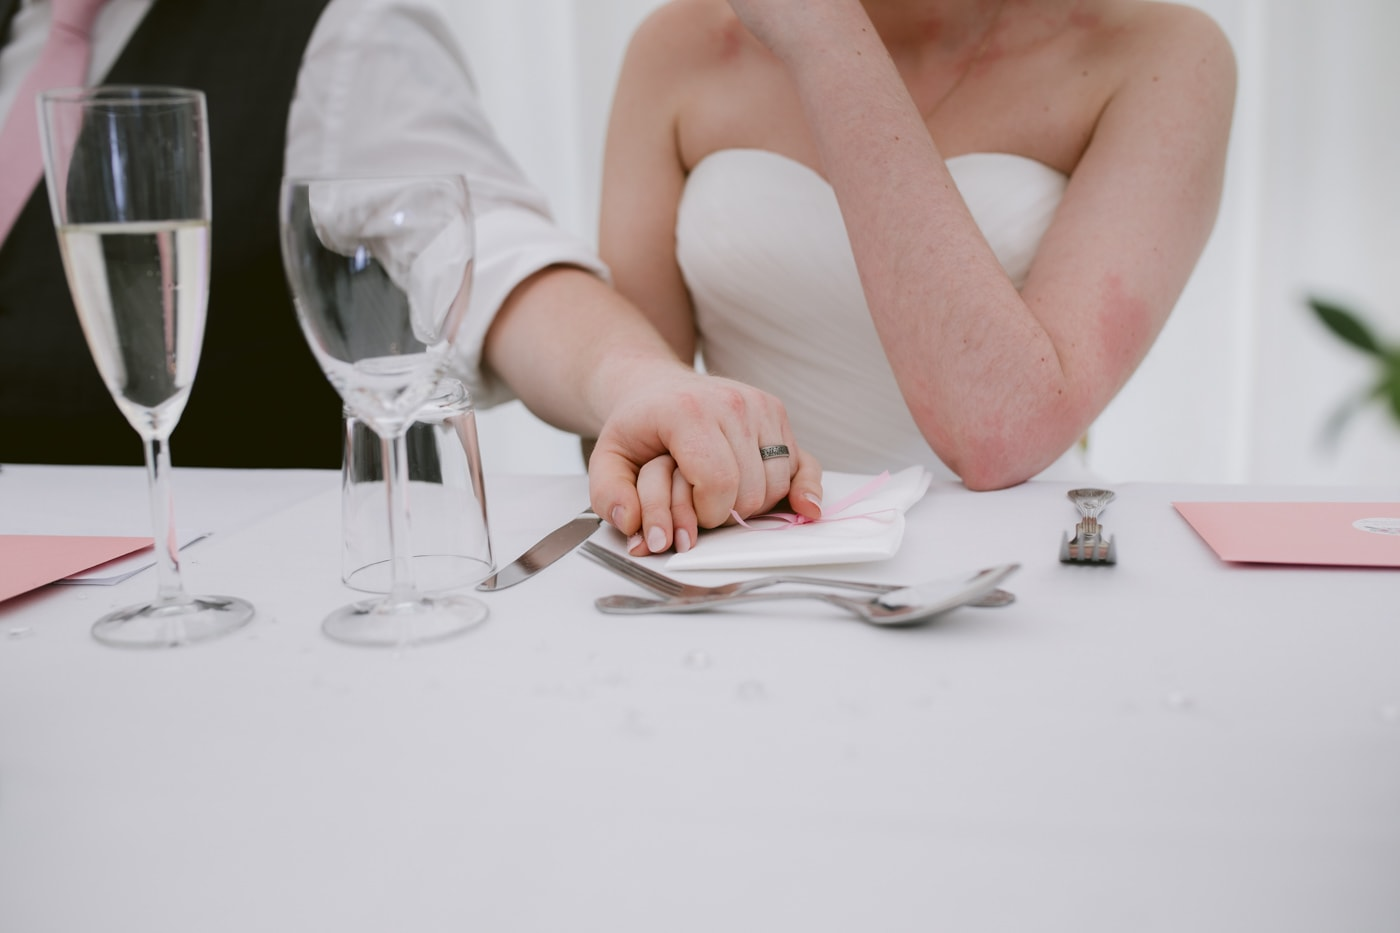 Bride and Groom Sitting at Table Holding Hands in Union Portrait